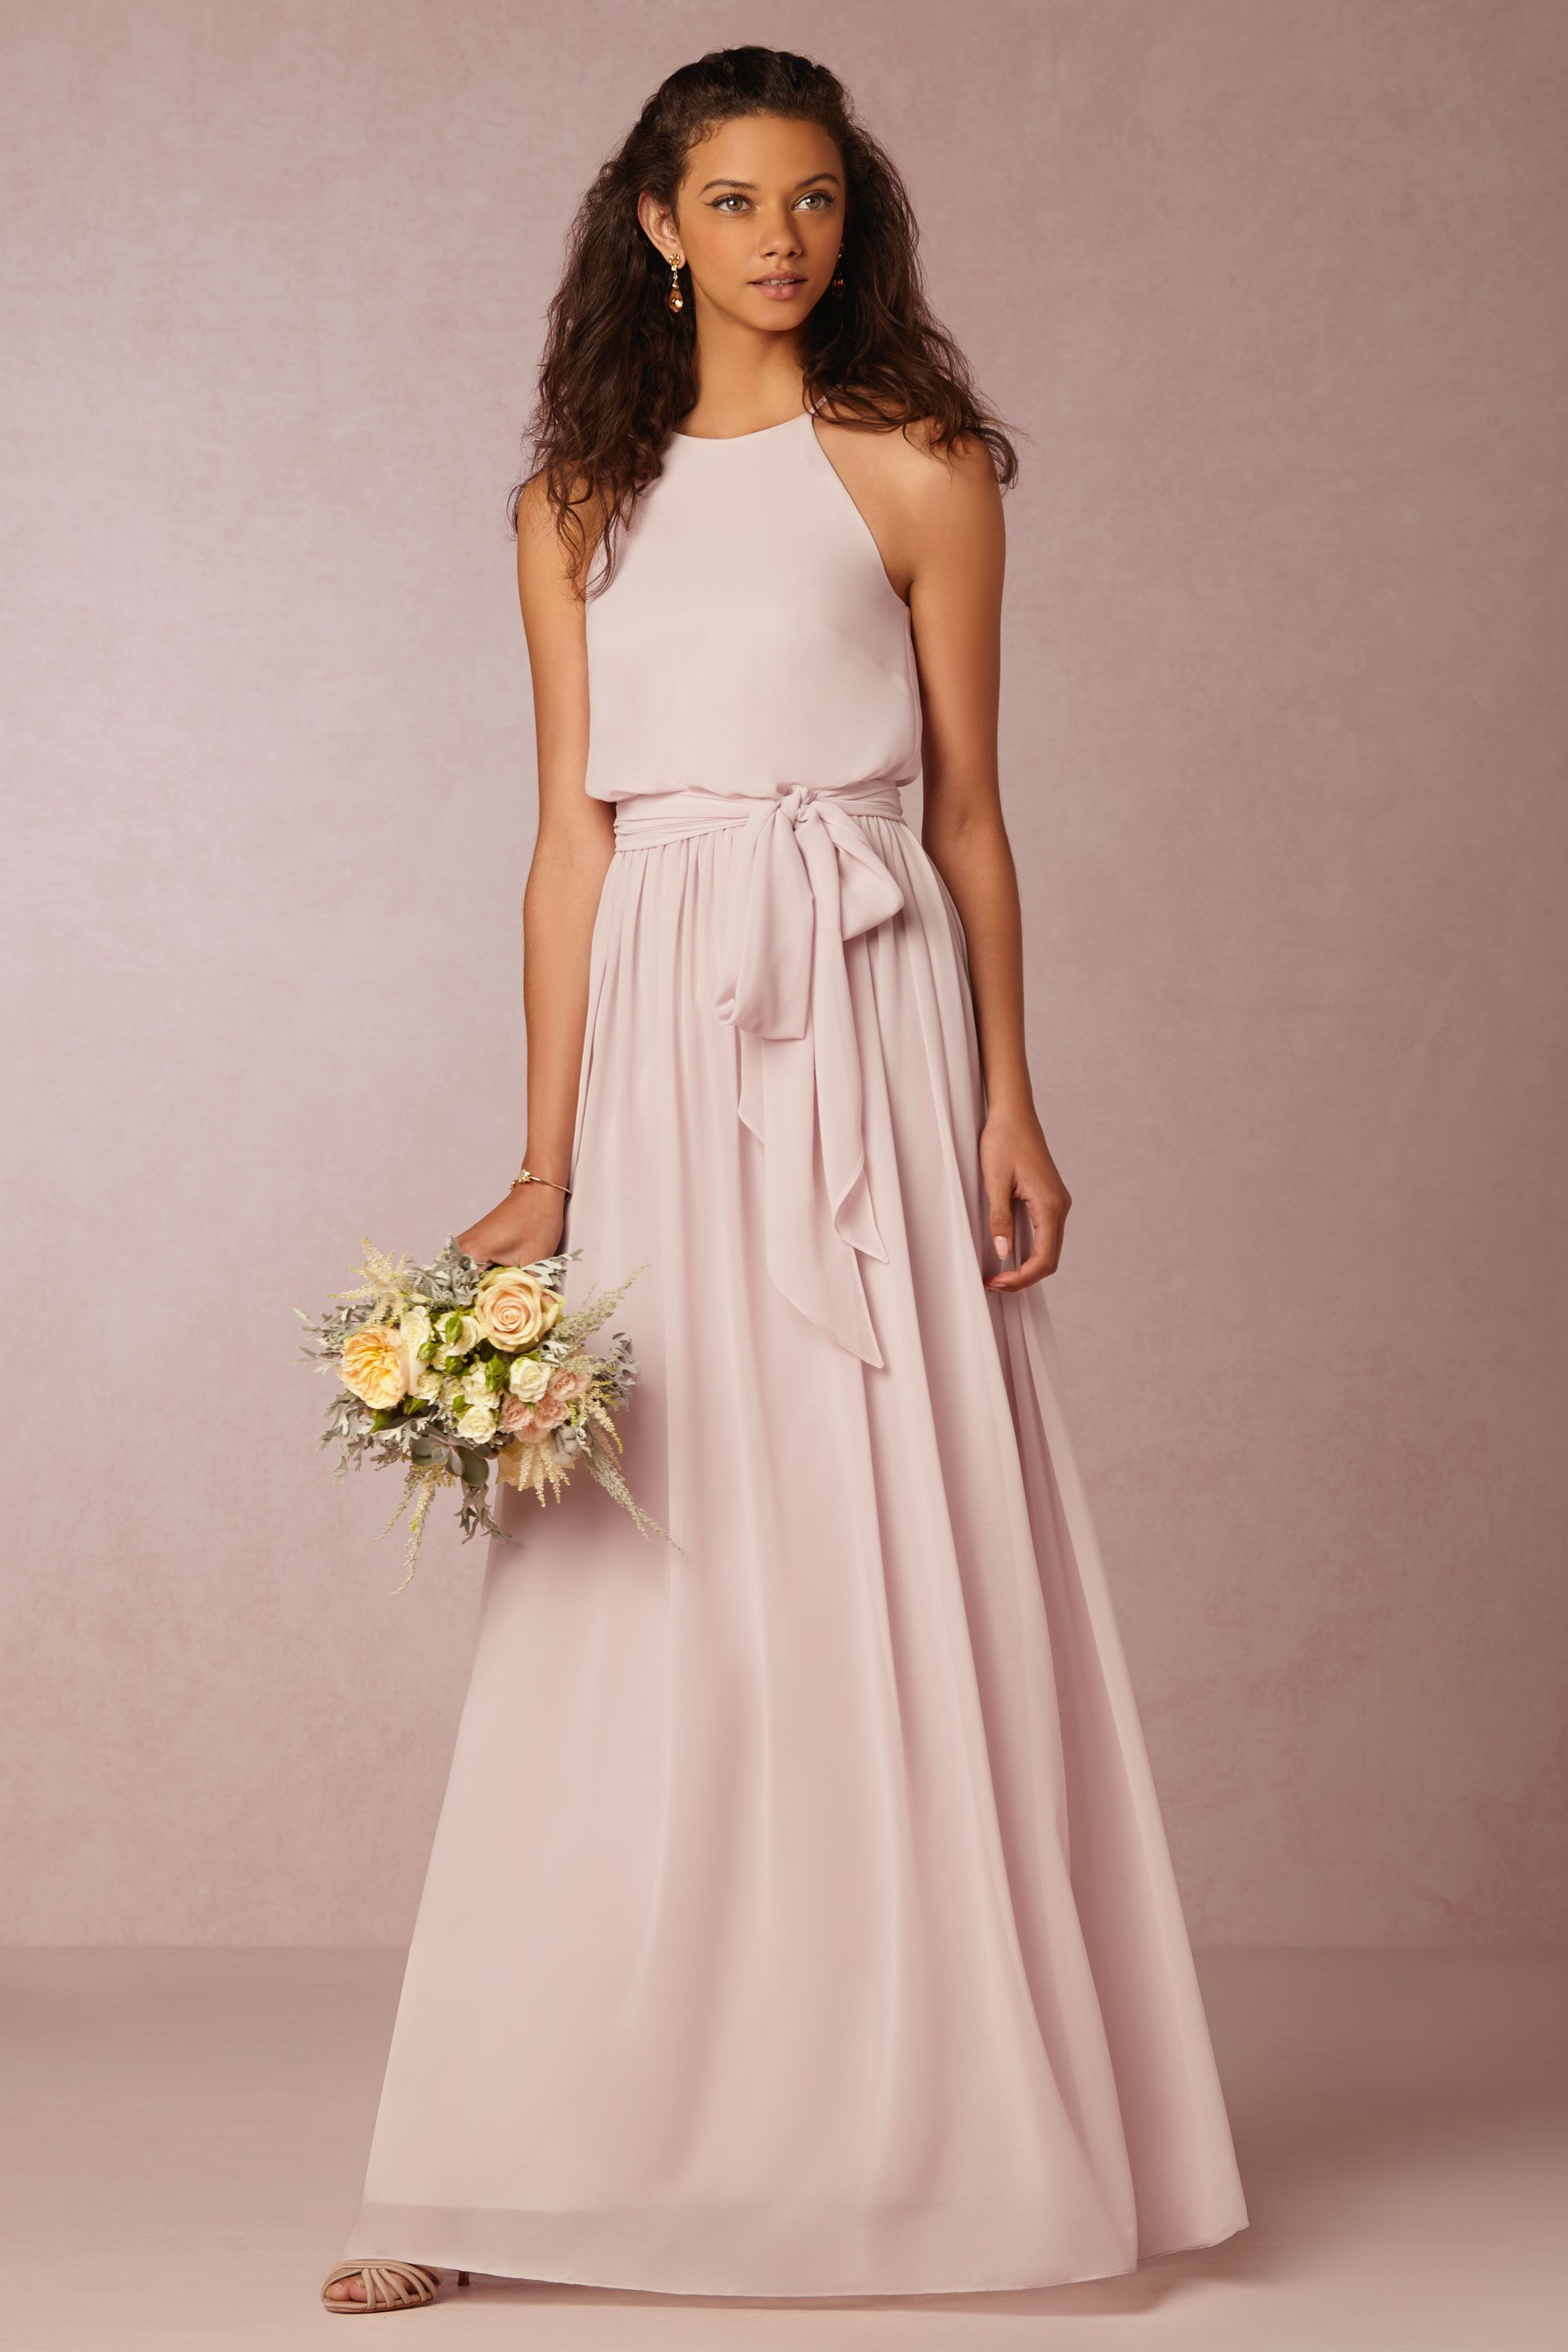 Bridesmaid dresses for spring weddings | via http://emmalinebride.com/bridesmaid/bridesmaid-dresses-spring-weddings/ ‎